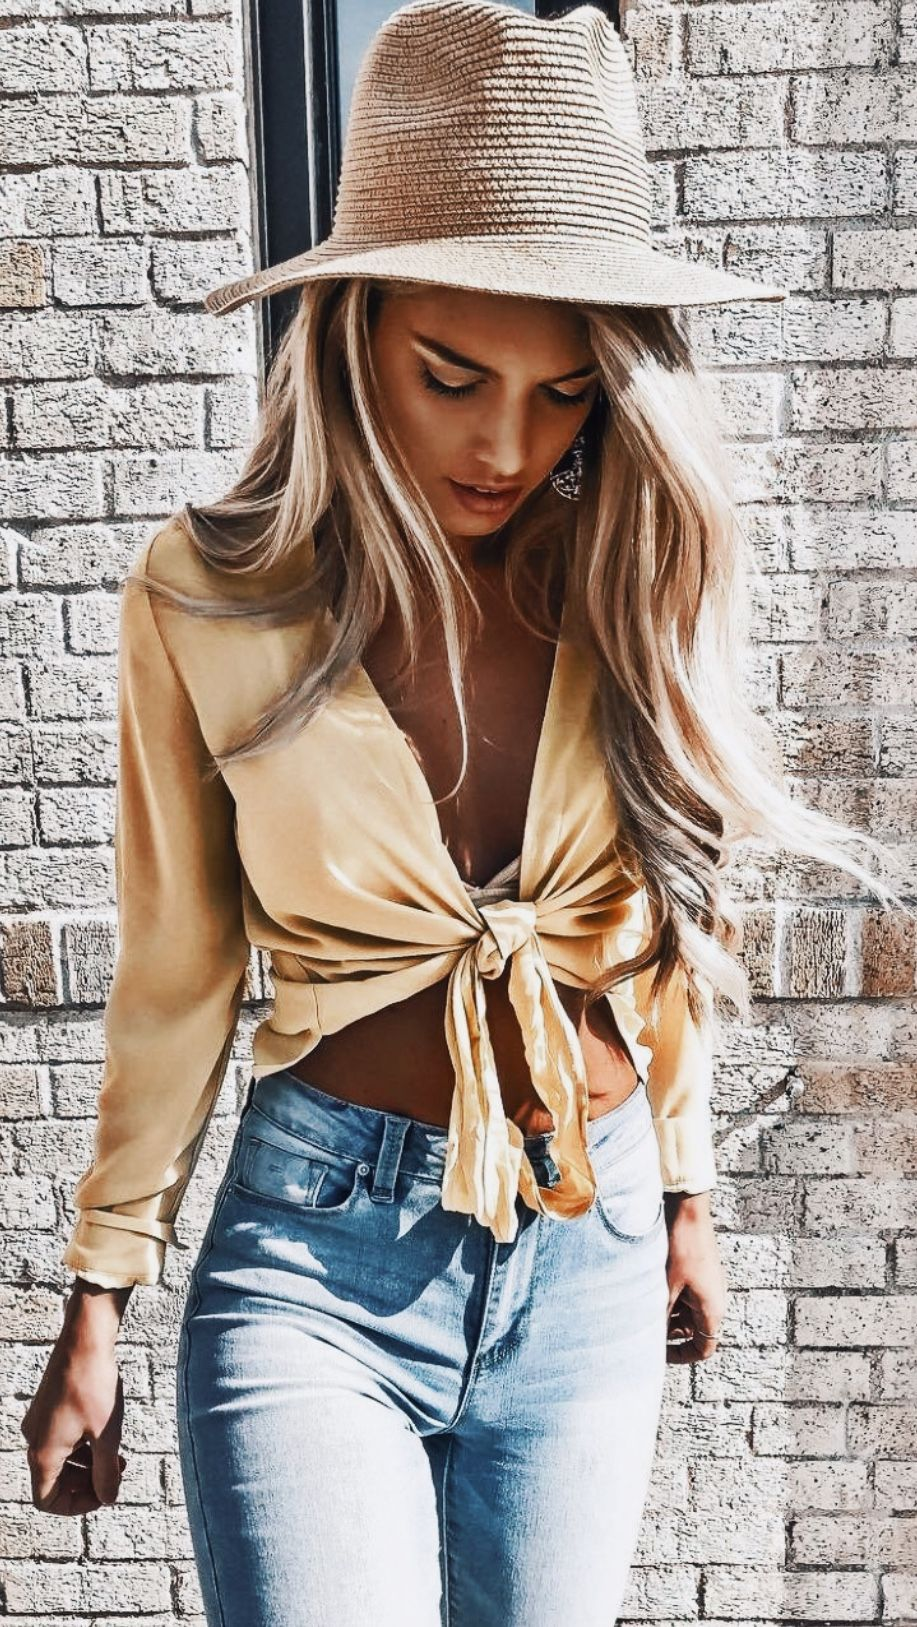 7ef17d596d6e 45 Trendy Summer Outfits Ideas for Girls To Wear Now - Fashmagg